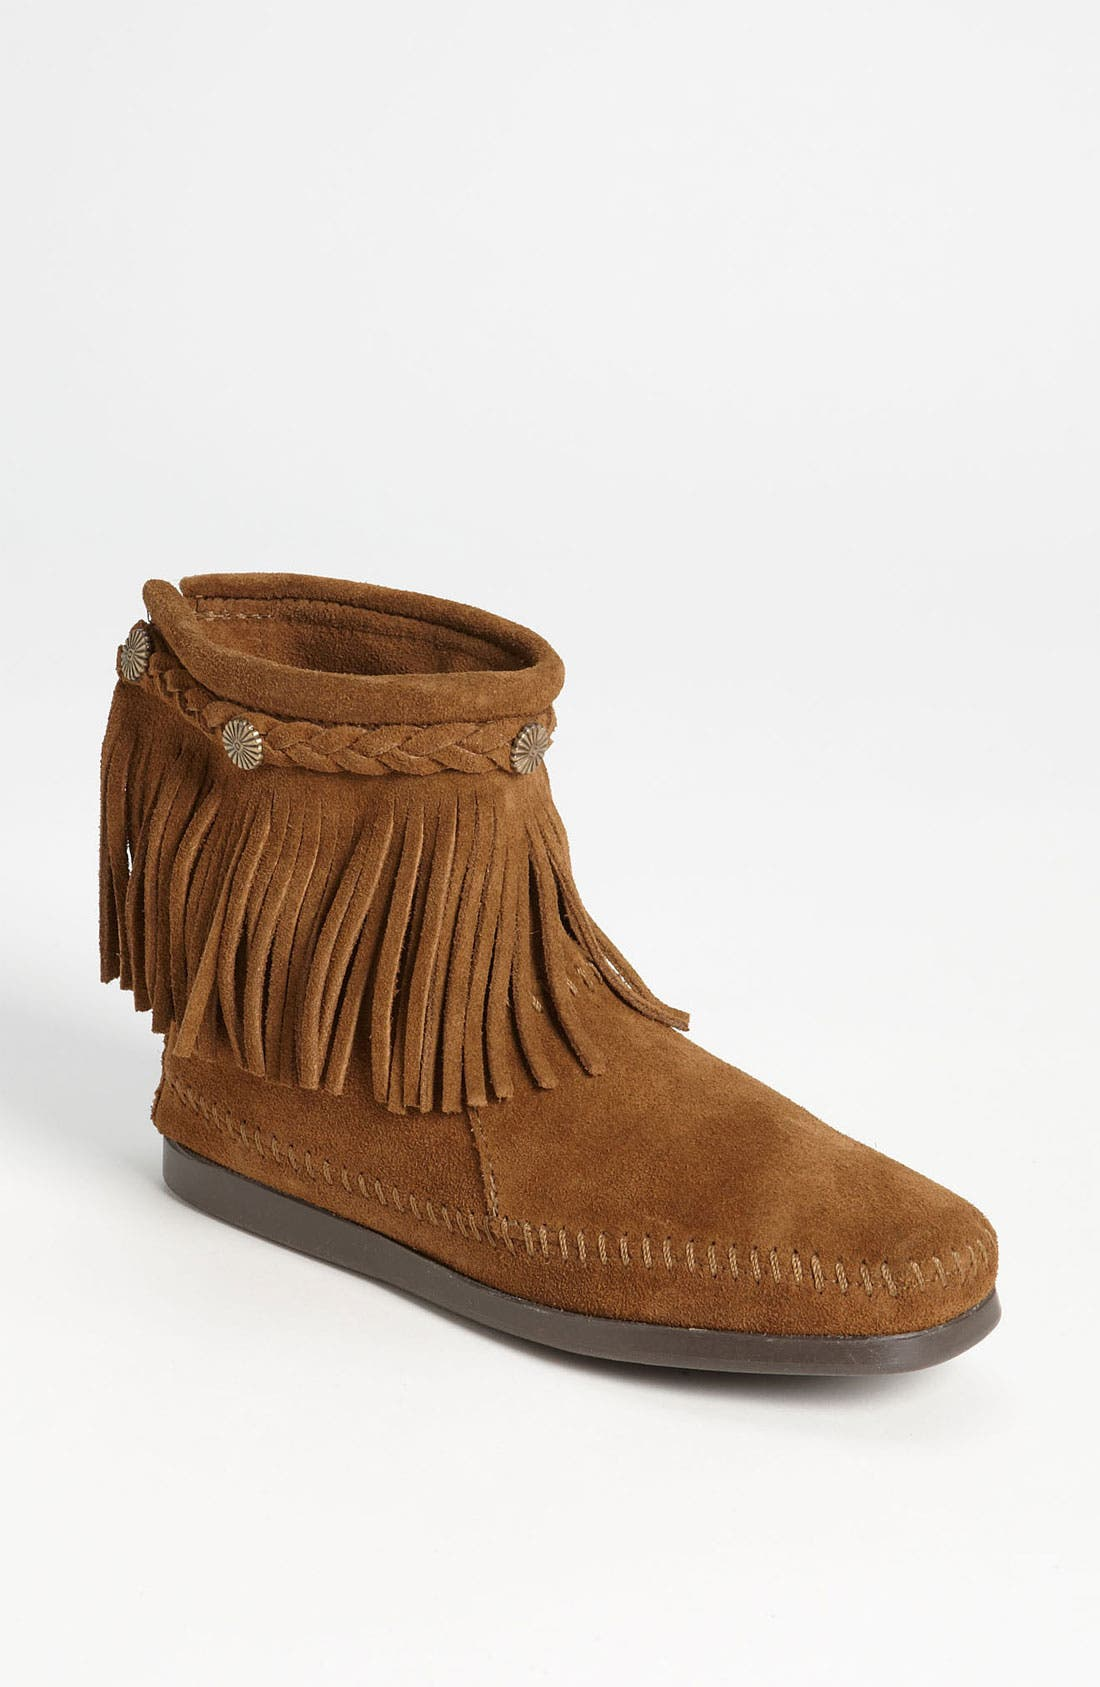 Main Image - Minnetonka Fringed Moccasin Bootie (Women)